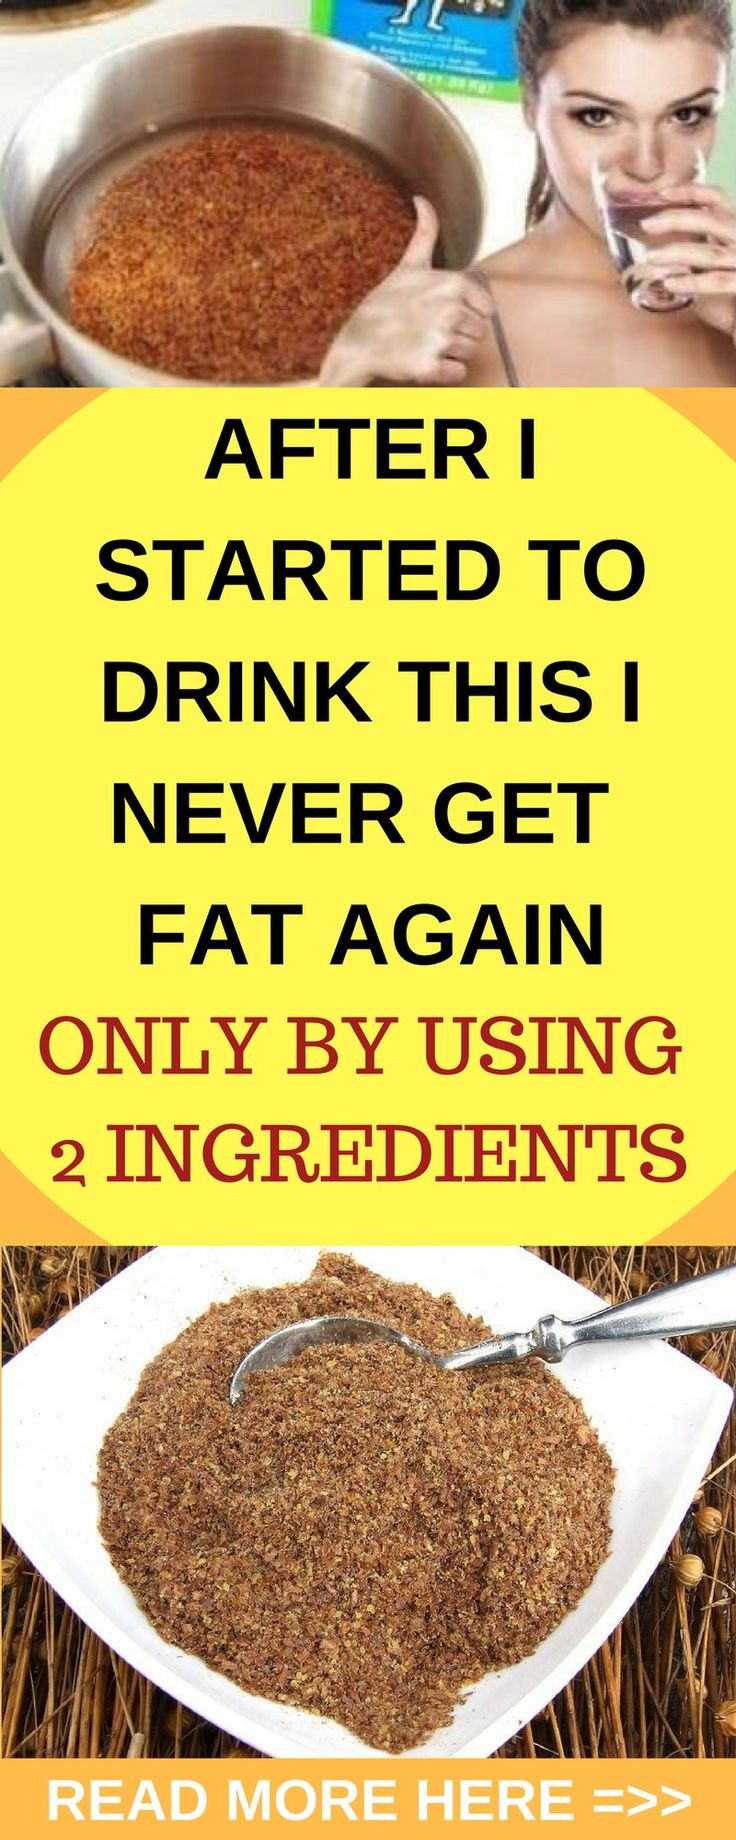 Cholesterol Cure I Never Gained Weight Again After I Started Talking Only This 2 Ingredients The One Food Cholesterol Cure